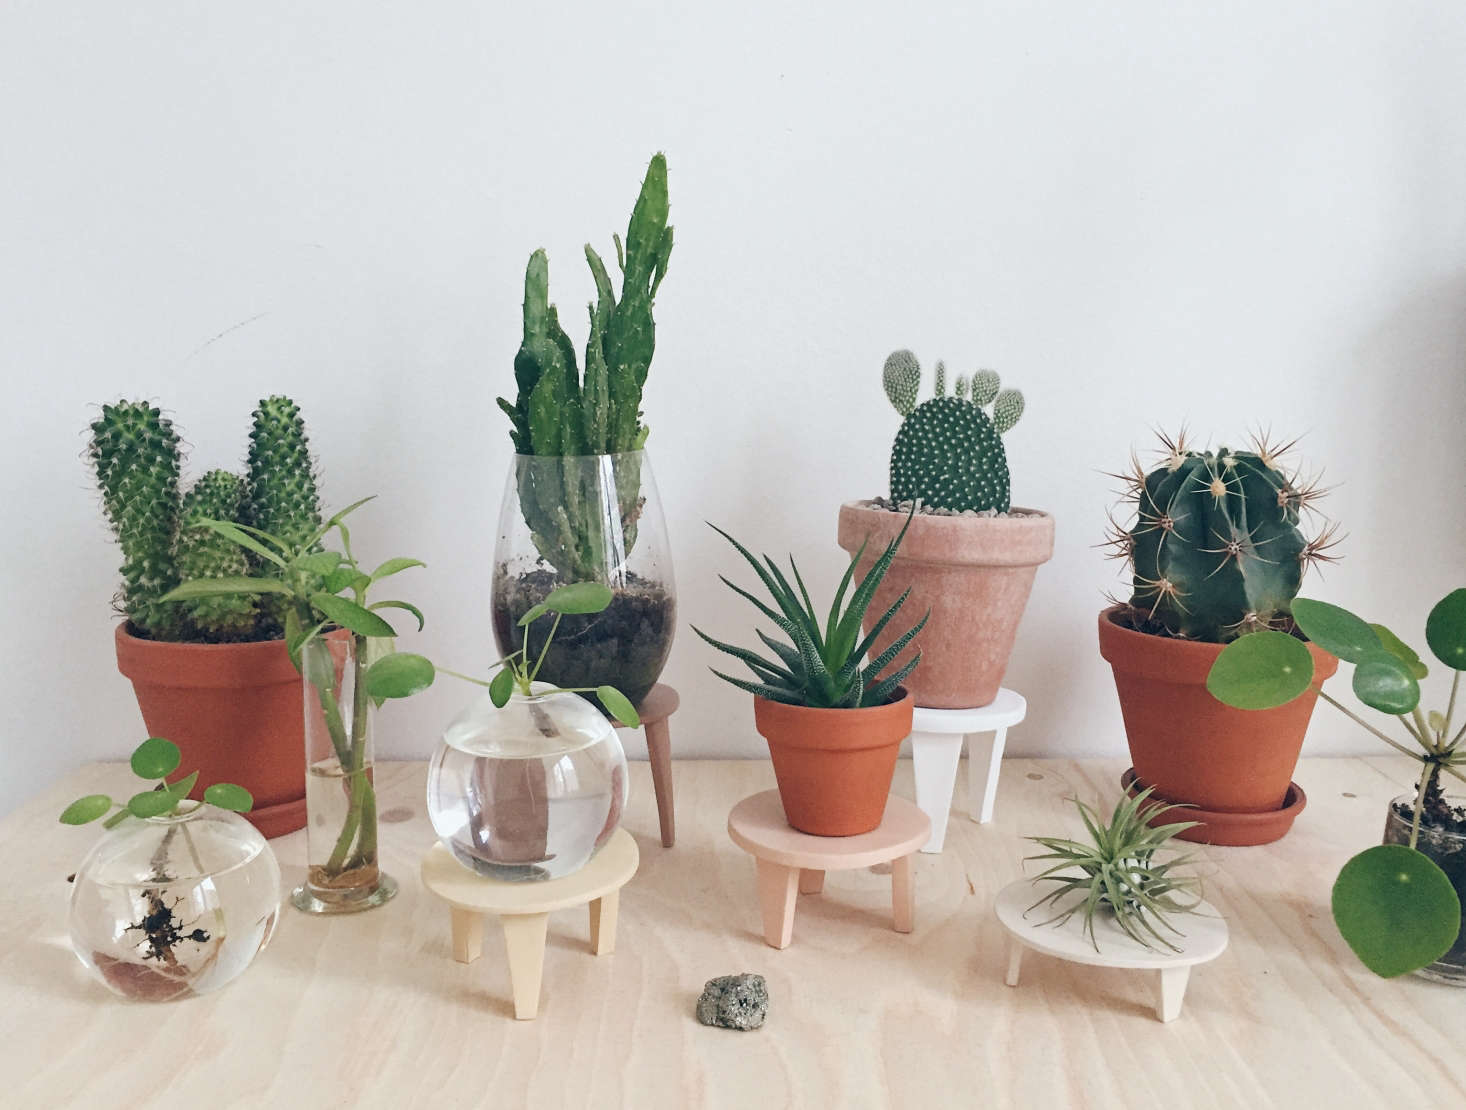 """To vary the heights of her potted plants, Maria fashioned """"cactus coasters."""""""